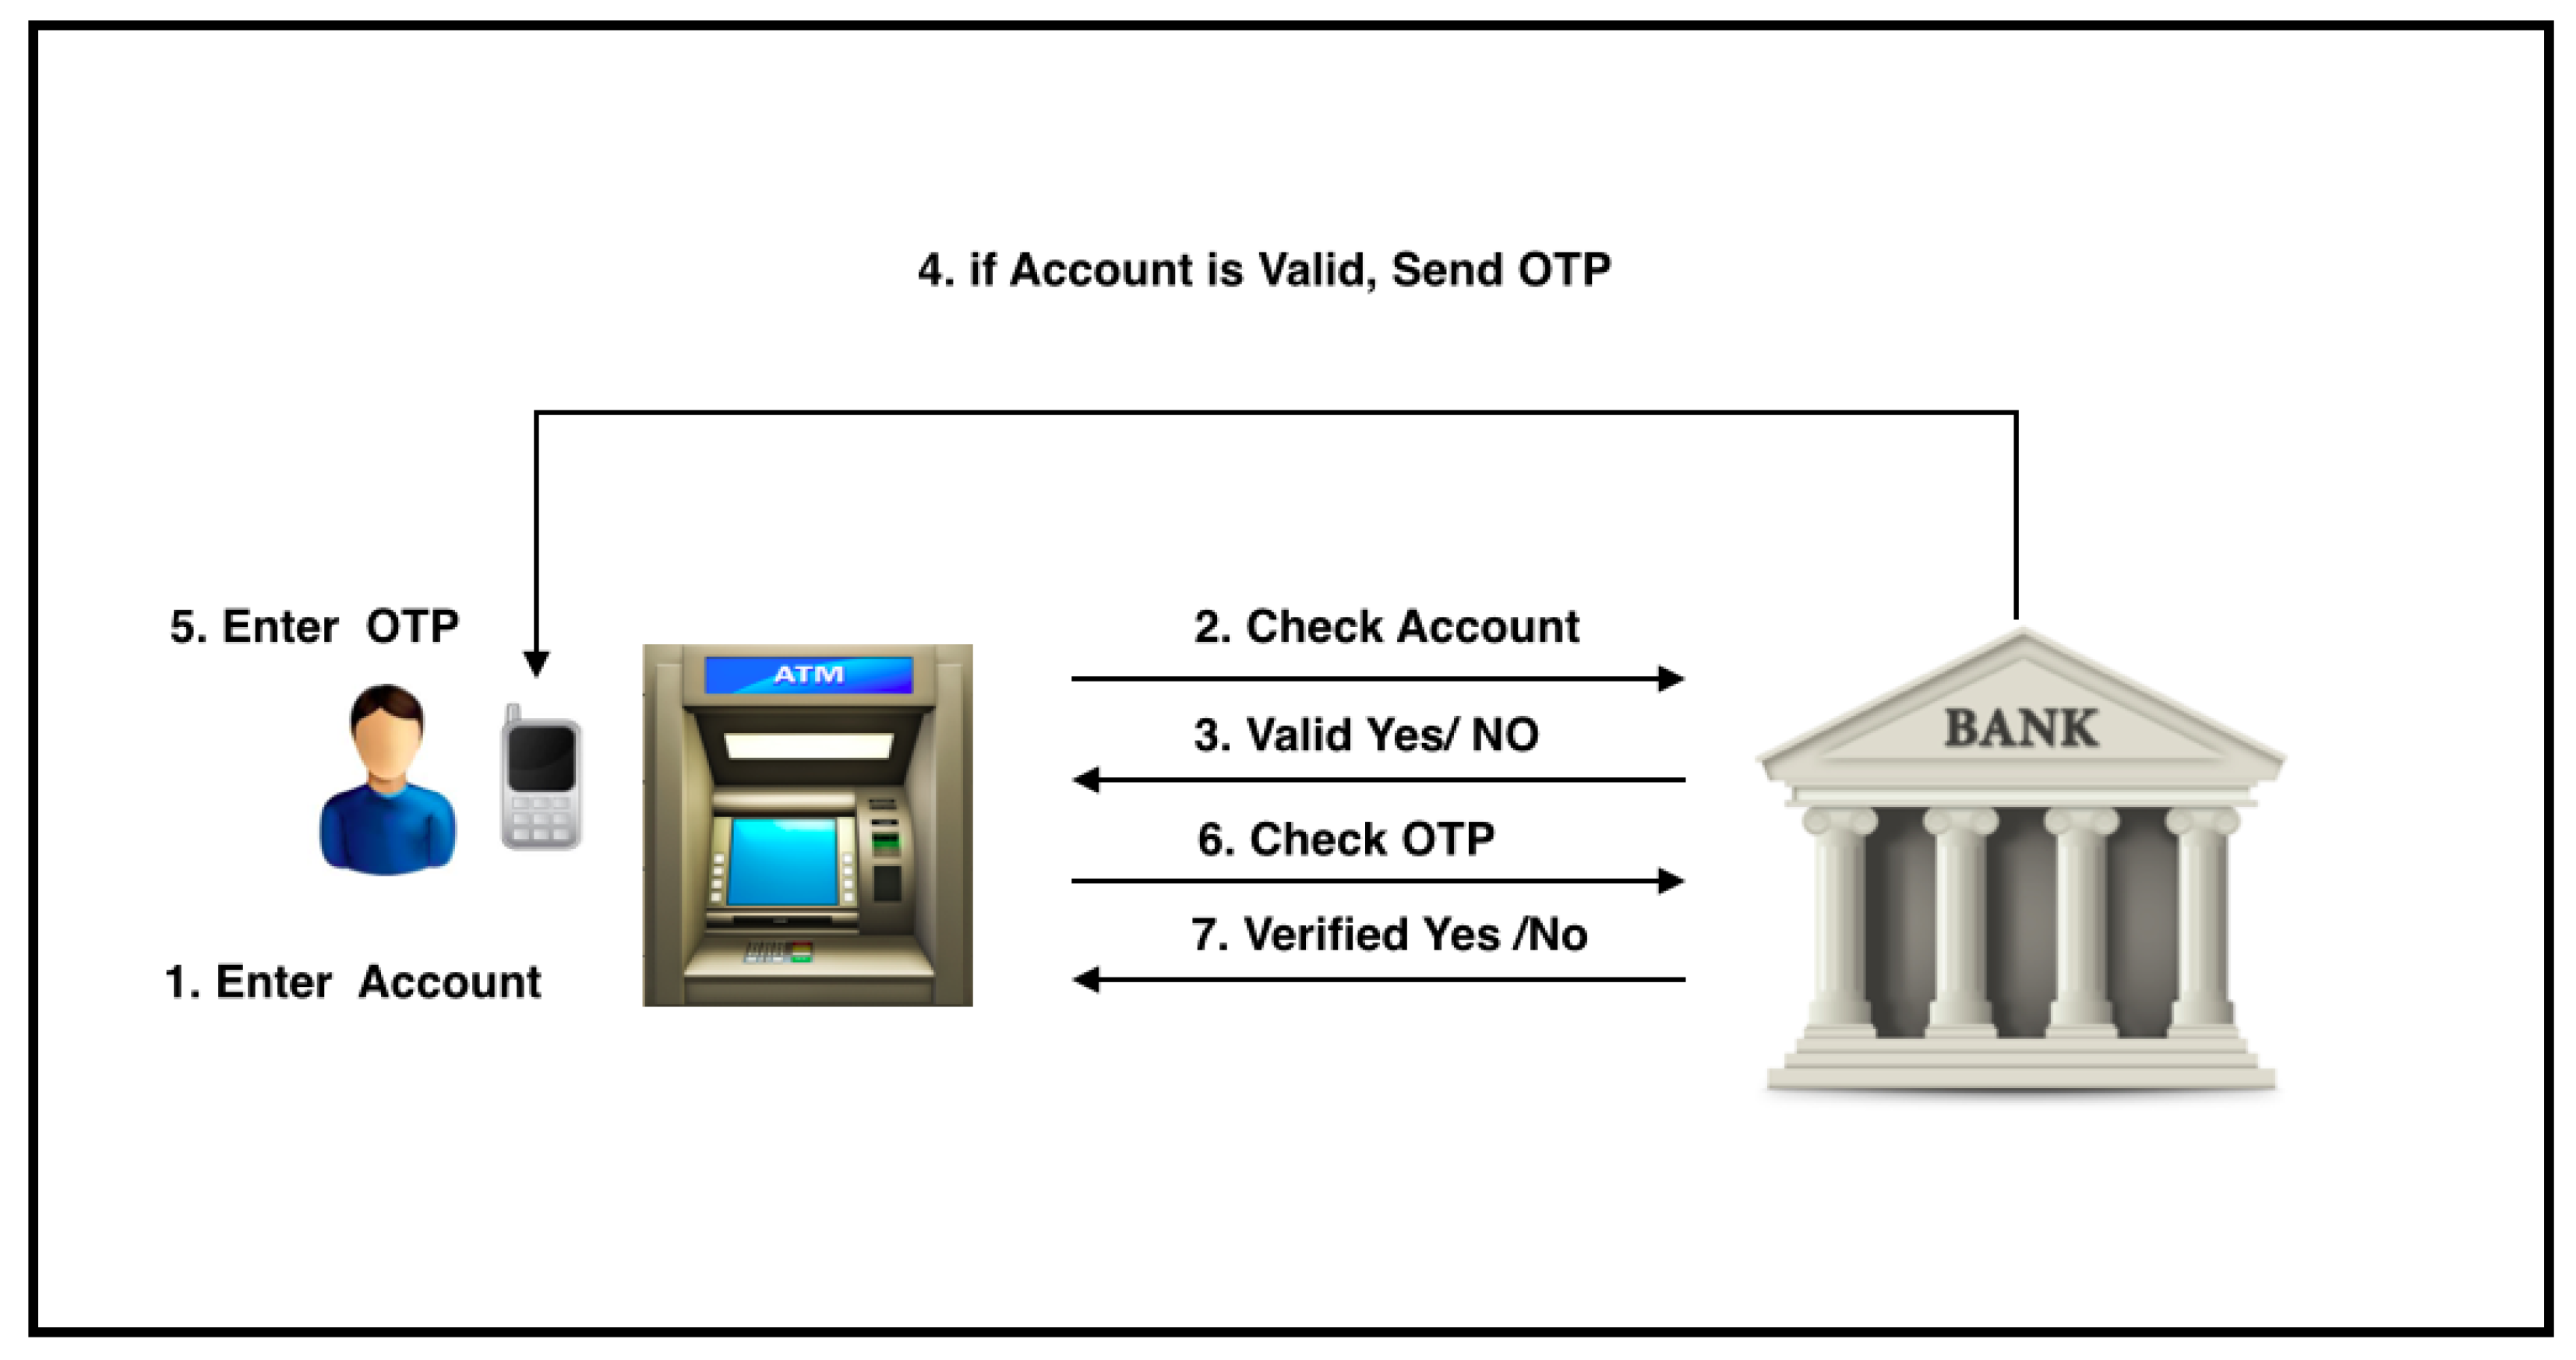 atm case study Customer satisfaction of atm service: a case study of hsbc atm  the  automated teller machine (atm) is one type of innovation that can mechanically.